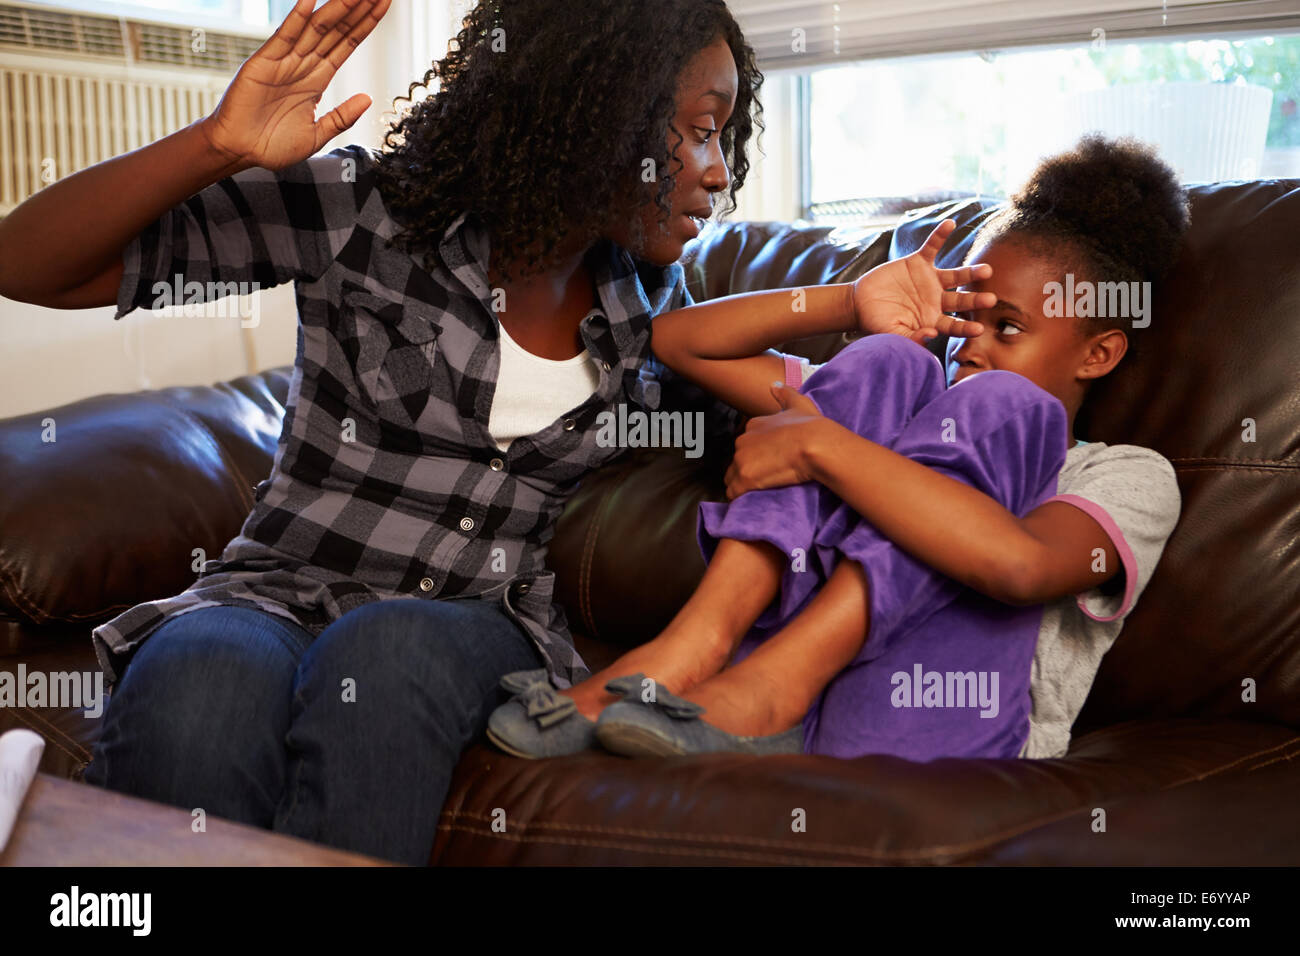 Mother Being Physically Abusive Towards Daughter At HomeStock Photo